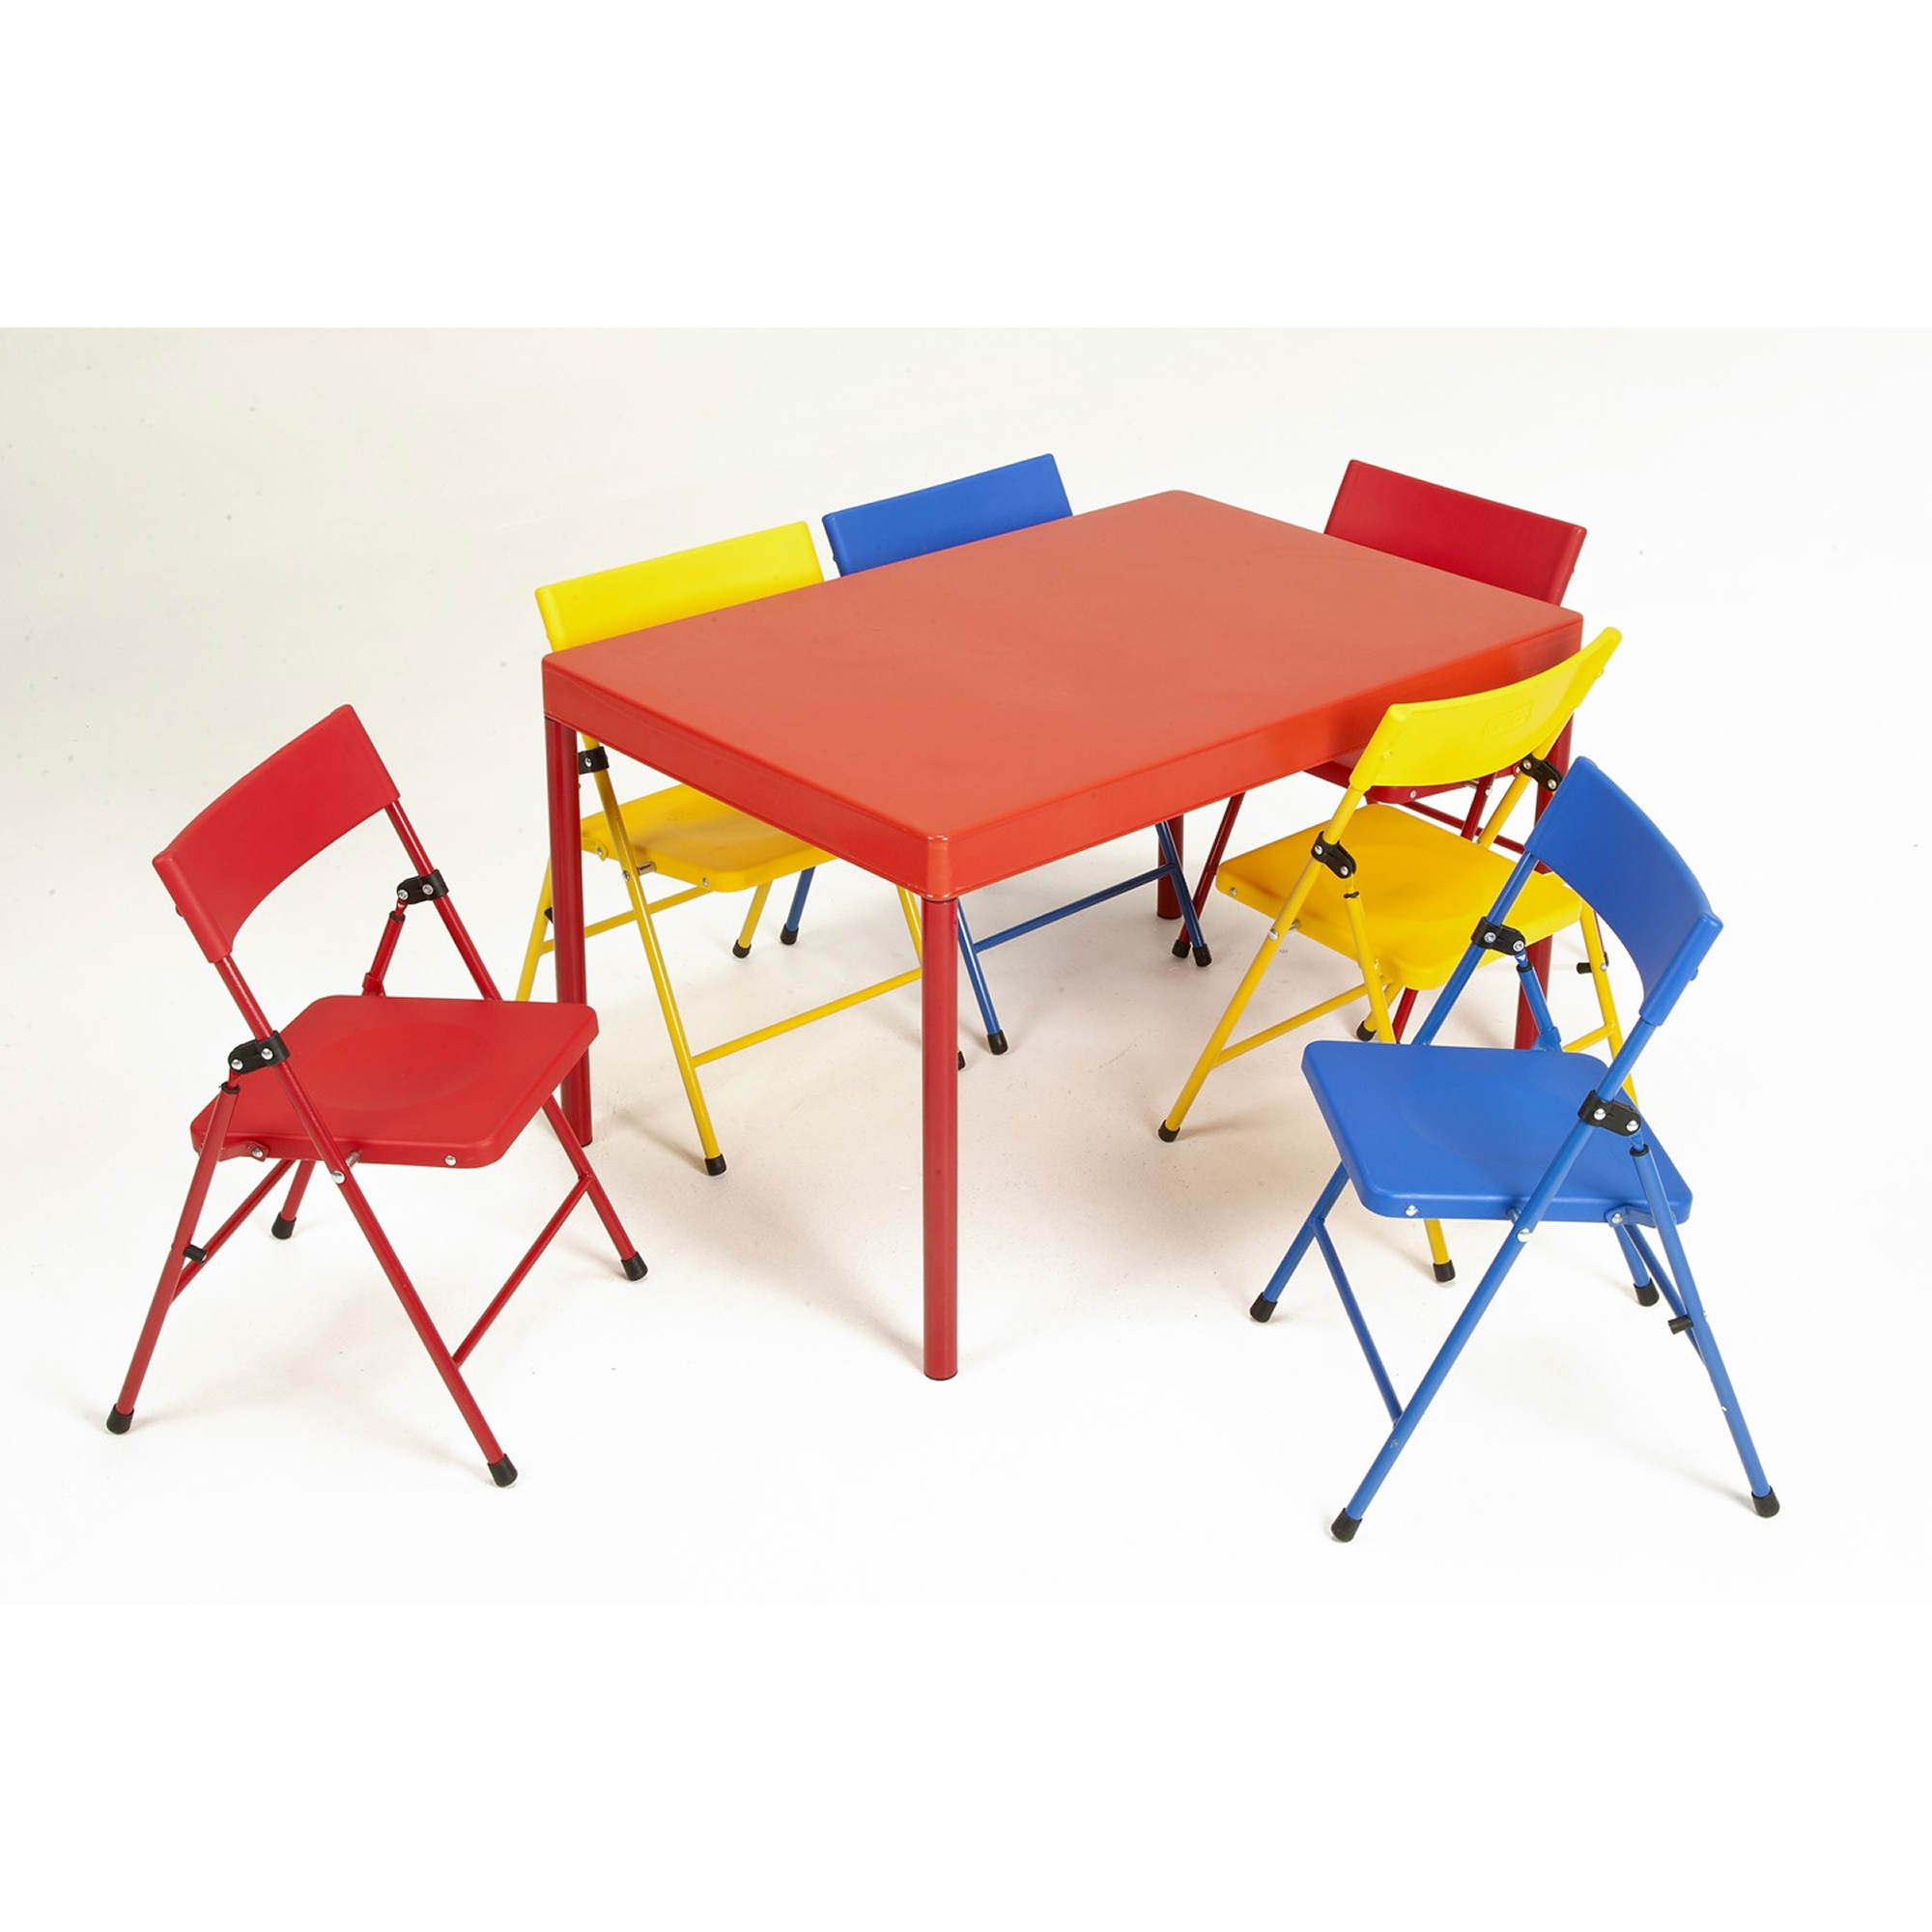 Cosco Products 7 Pc Kids Pinch Free Folding Table And